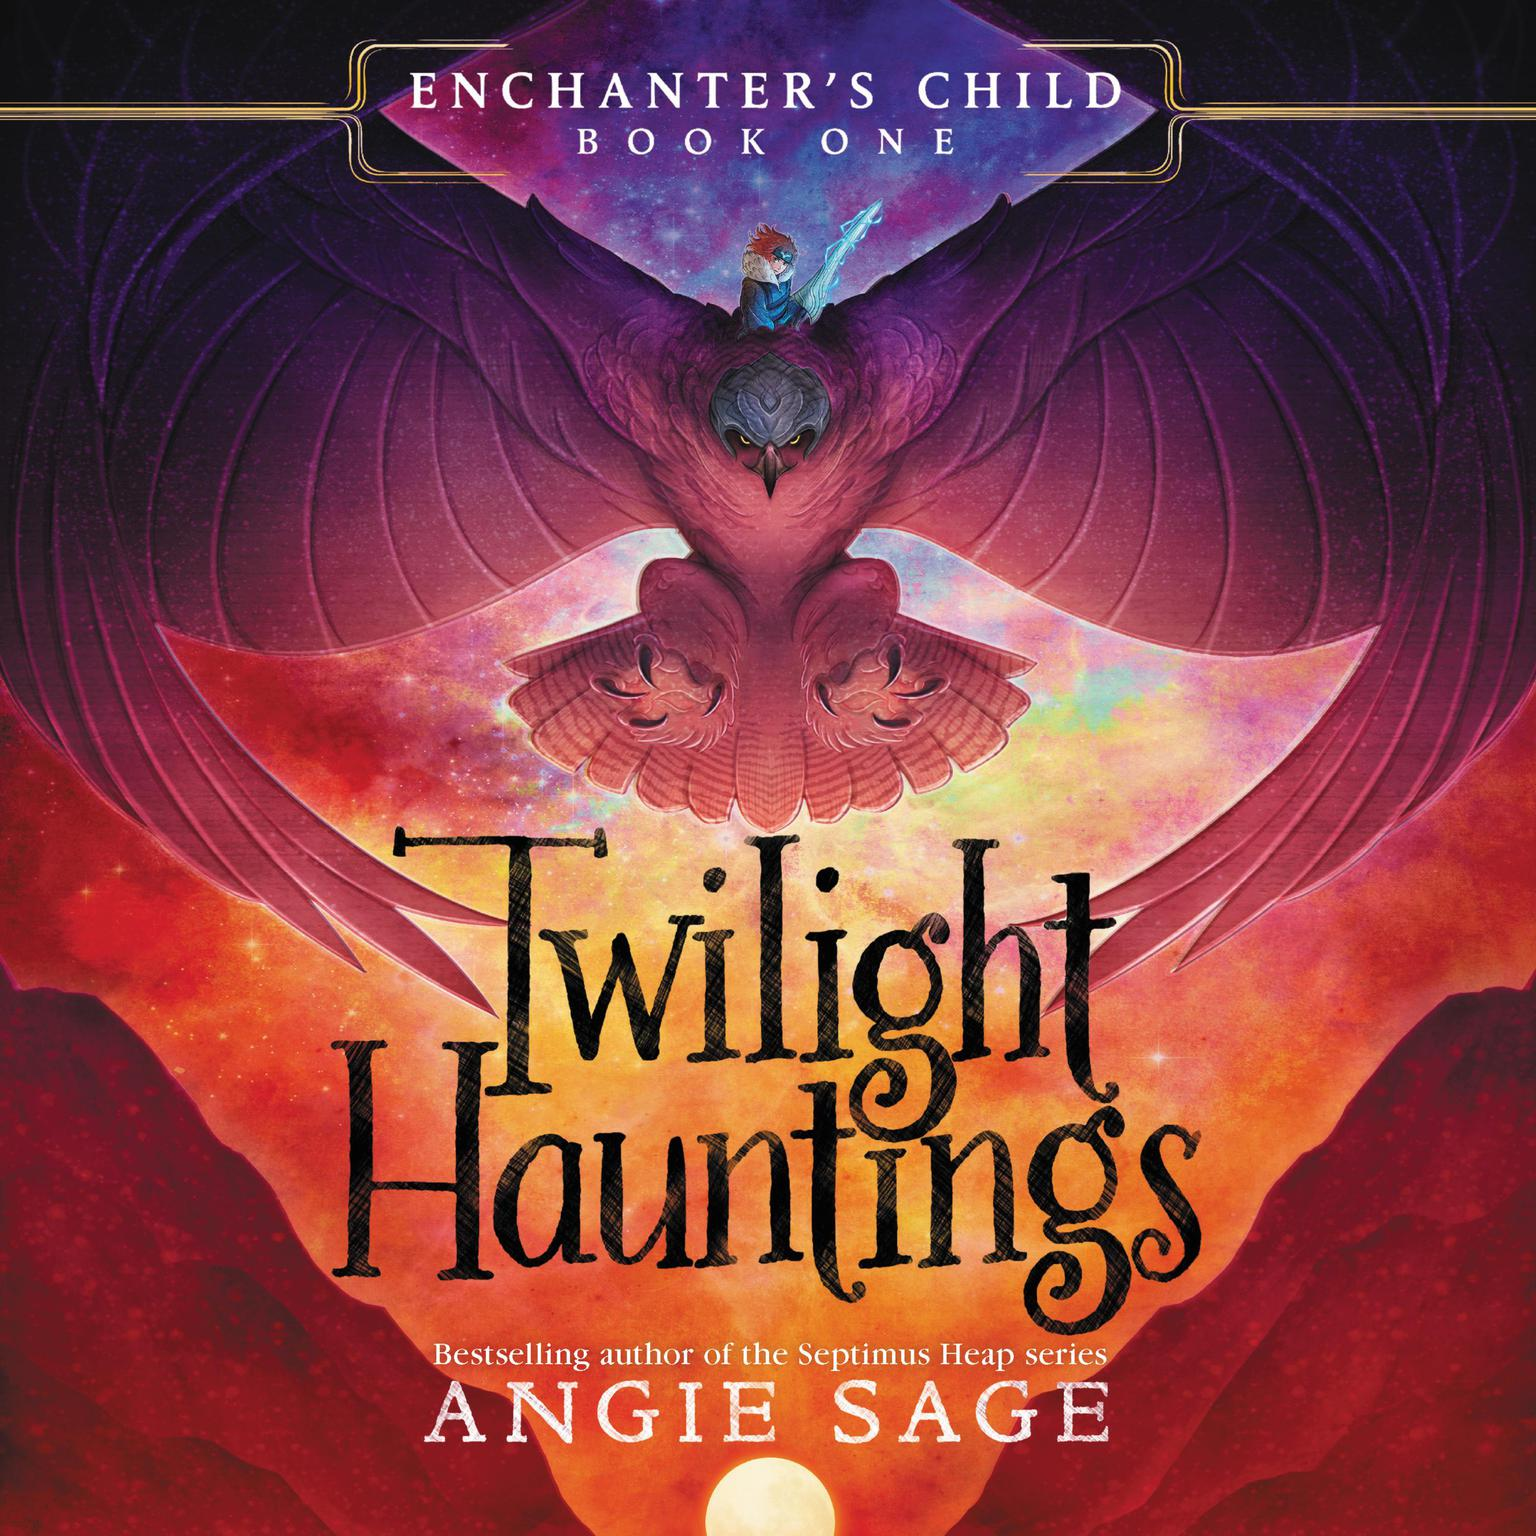 Printable Enchanter's Child, Book One: Twilight Hauntings Audiobook Cover Art